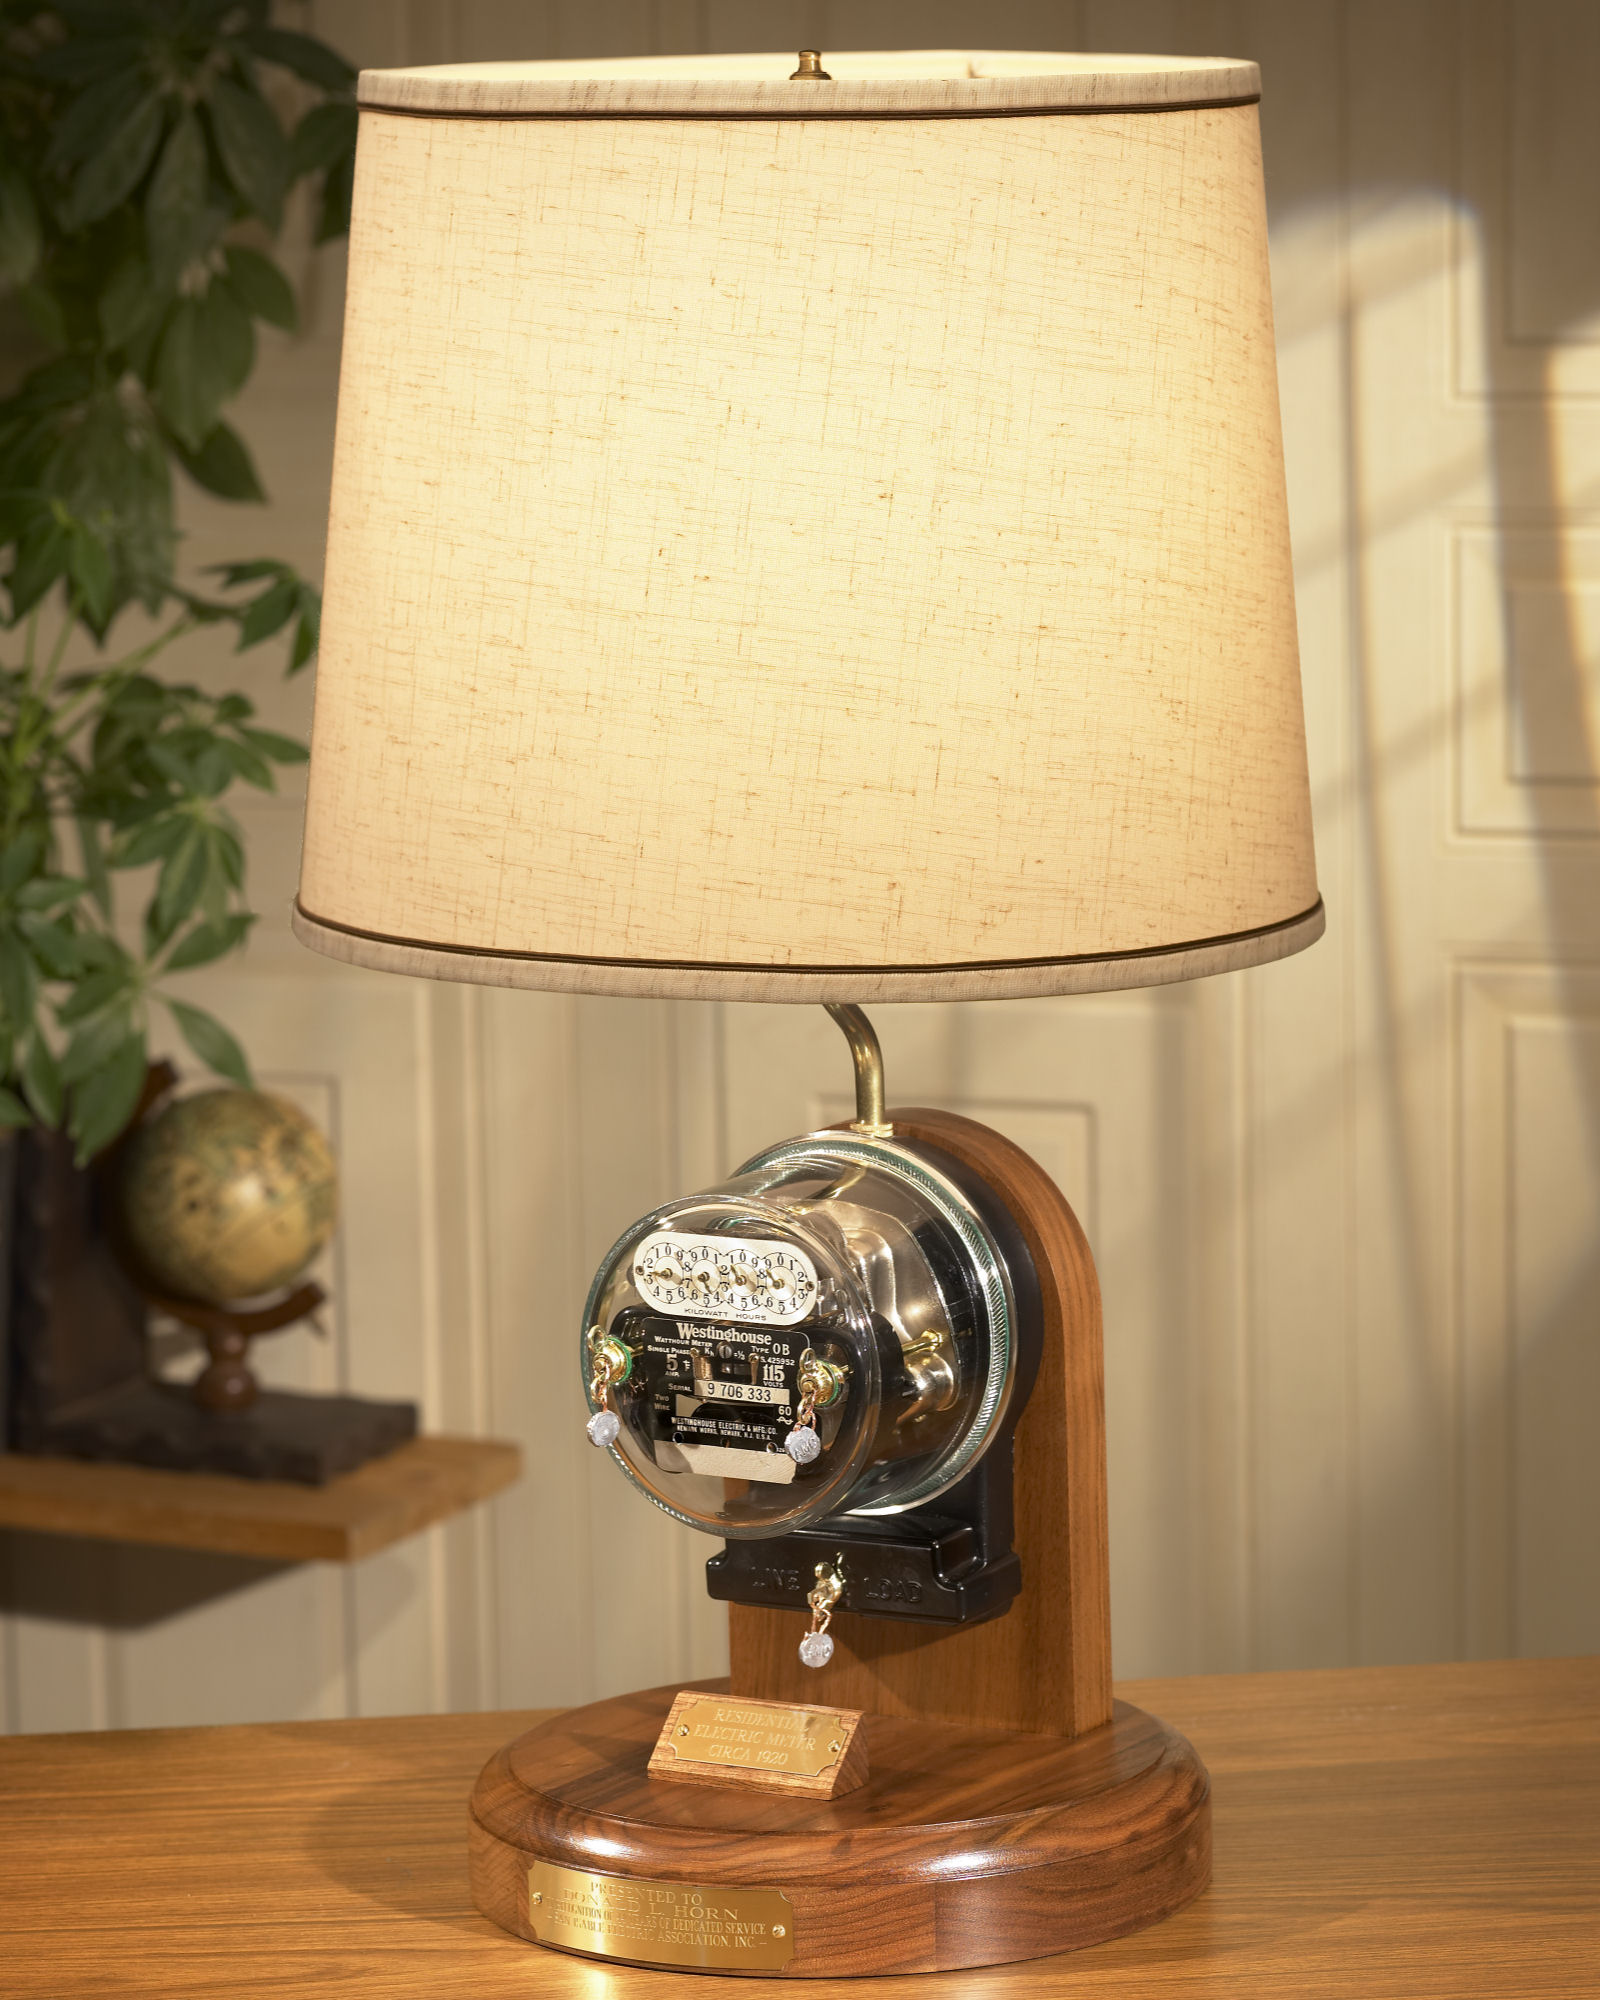 Heritage Residential Meter Lamp...traditional version. Deluxe is the same but with gold embellishments.